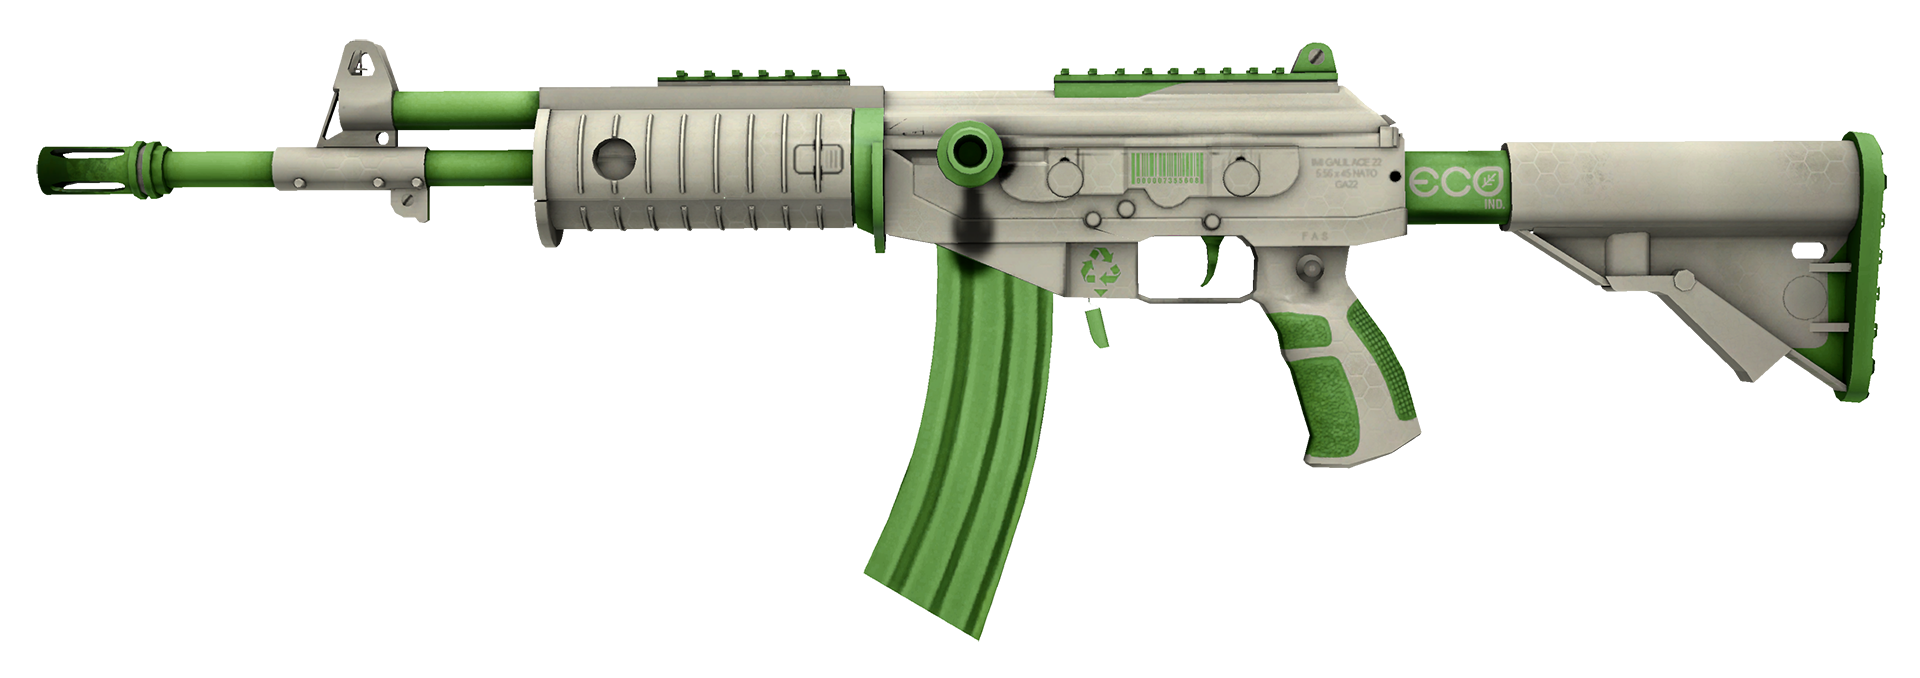 Galil AR Eco Large Rendering